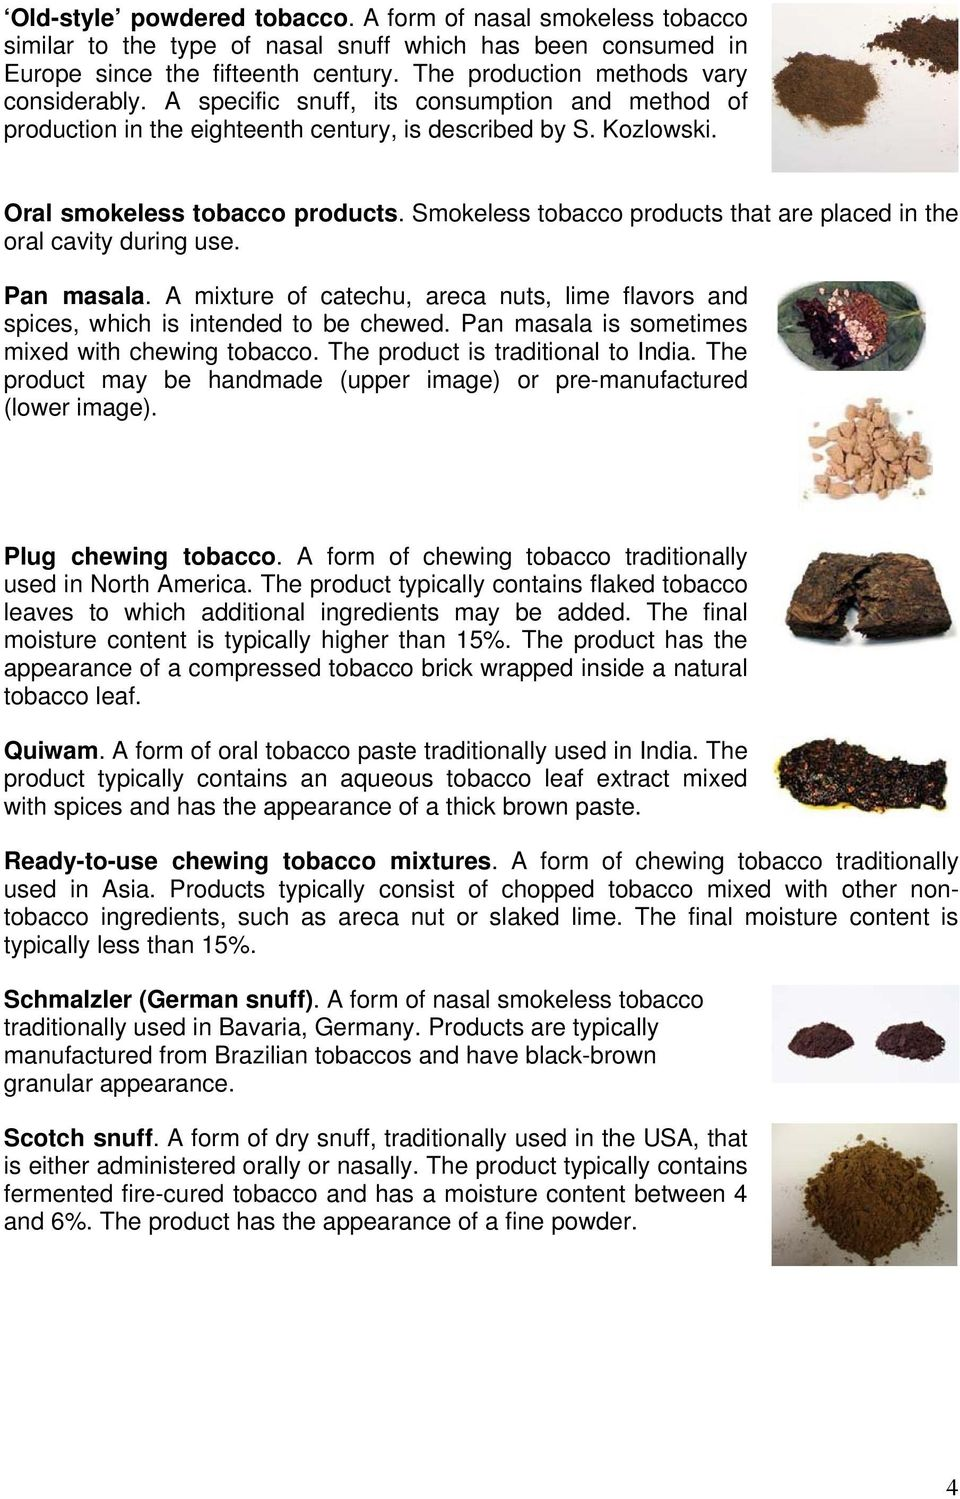 SMOKELESS TOBACCO GLOSSARY - PDF